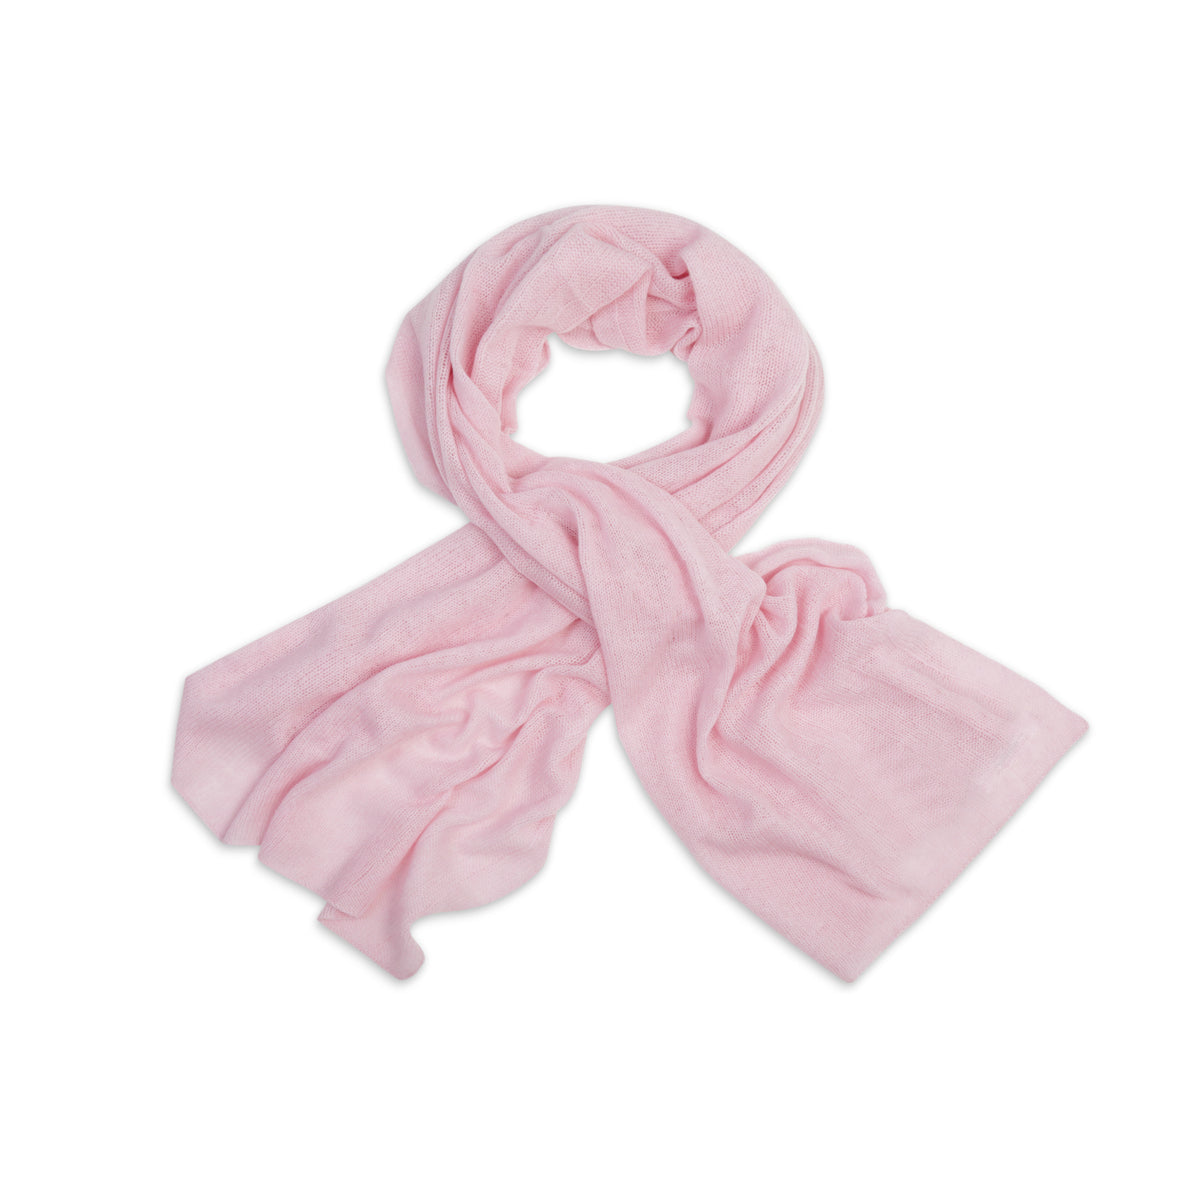 Powder Pink | Knitted Cashmere Stole | Knitted Cashmere Scarf | Shop at The Cashmere Choice | London